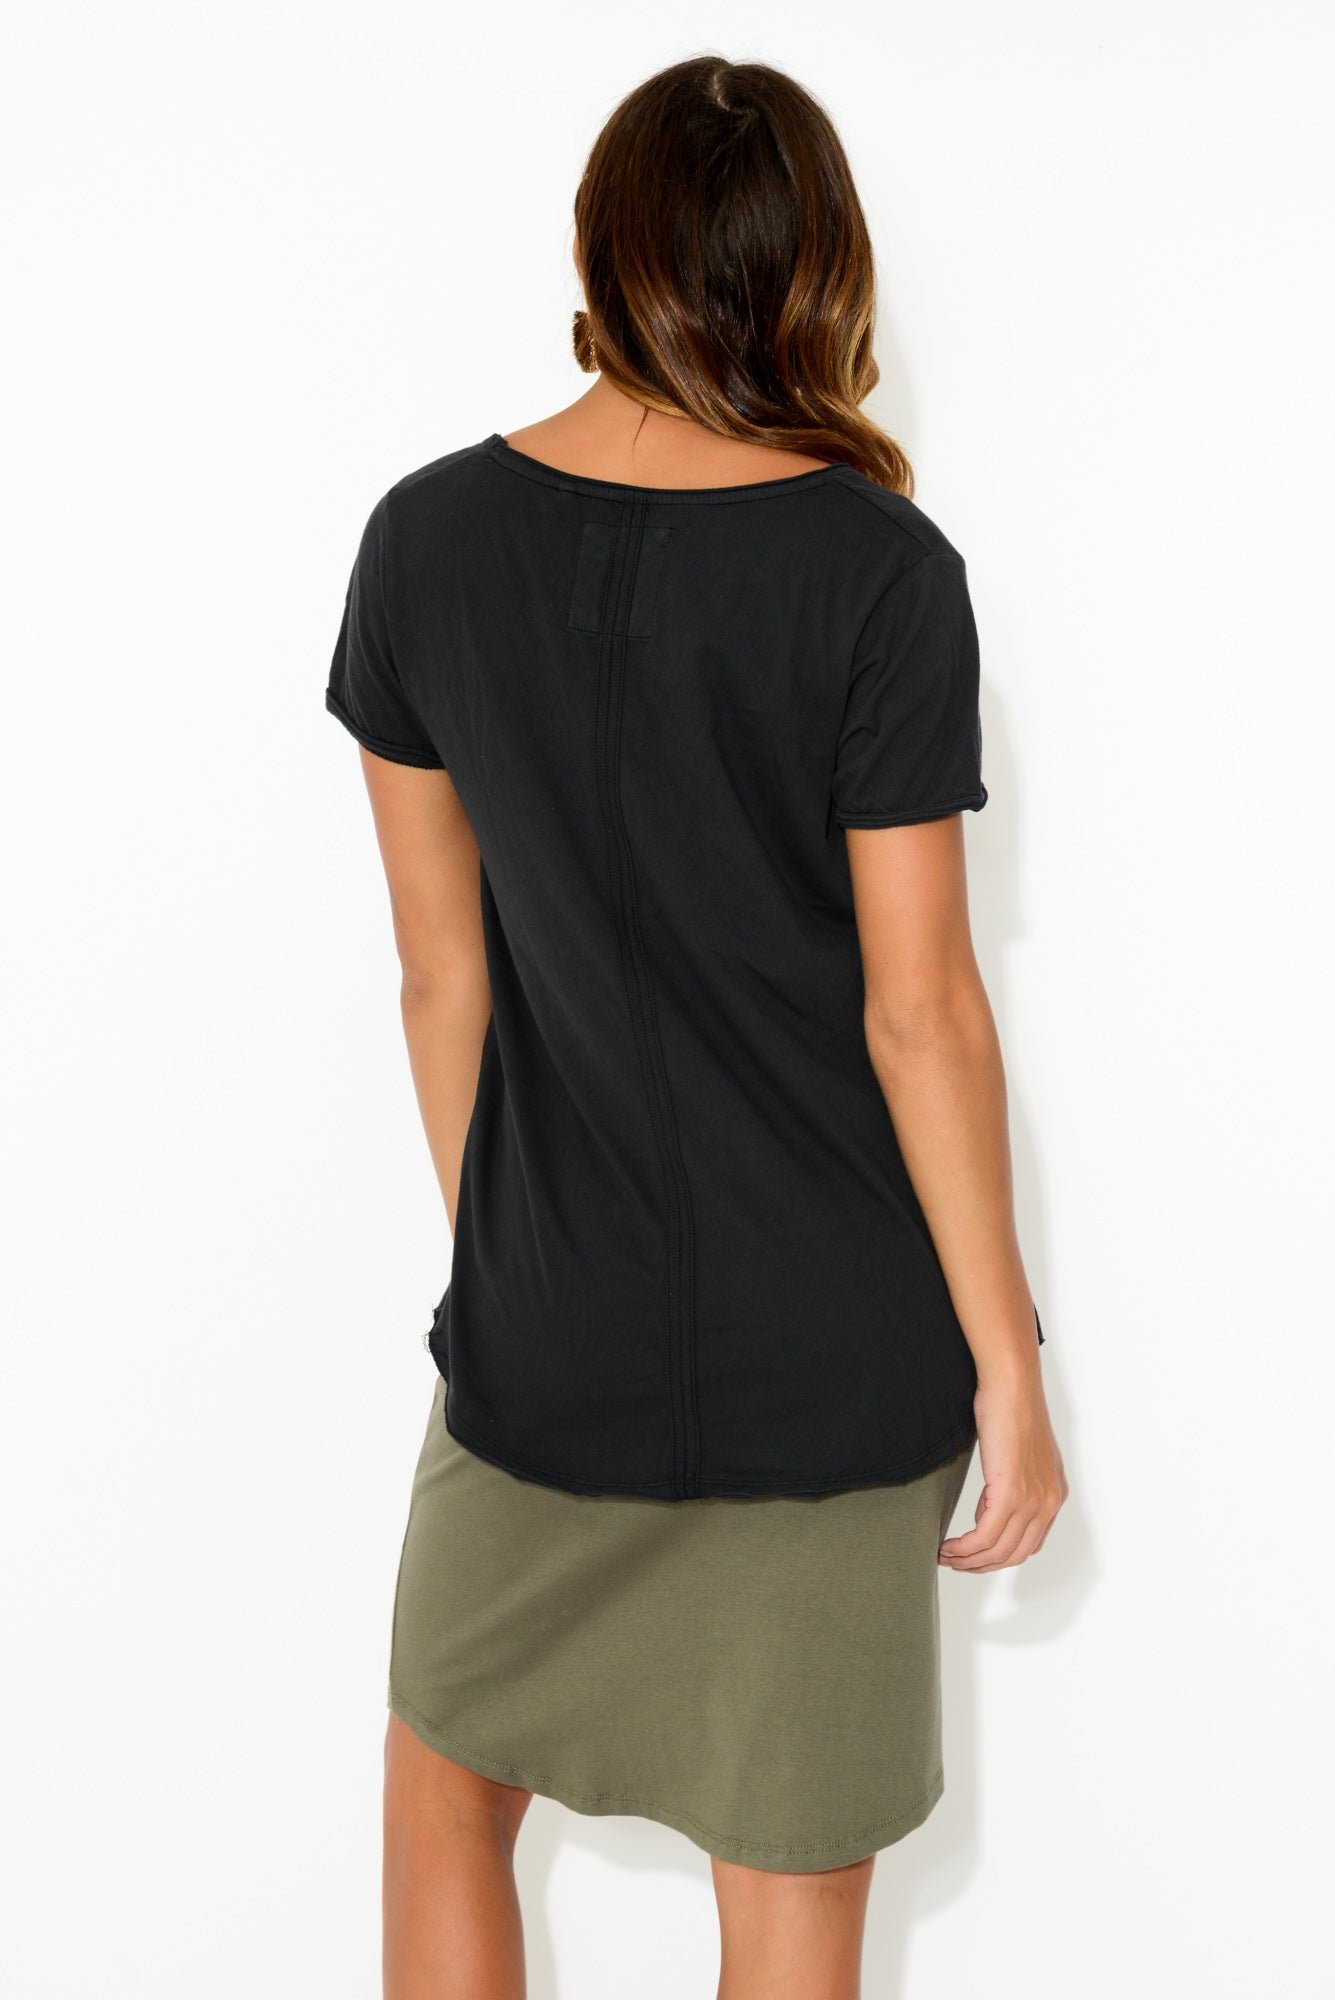 Black Cotton Fundamental Vee Tee